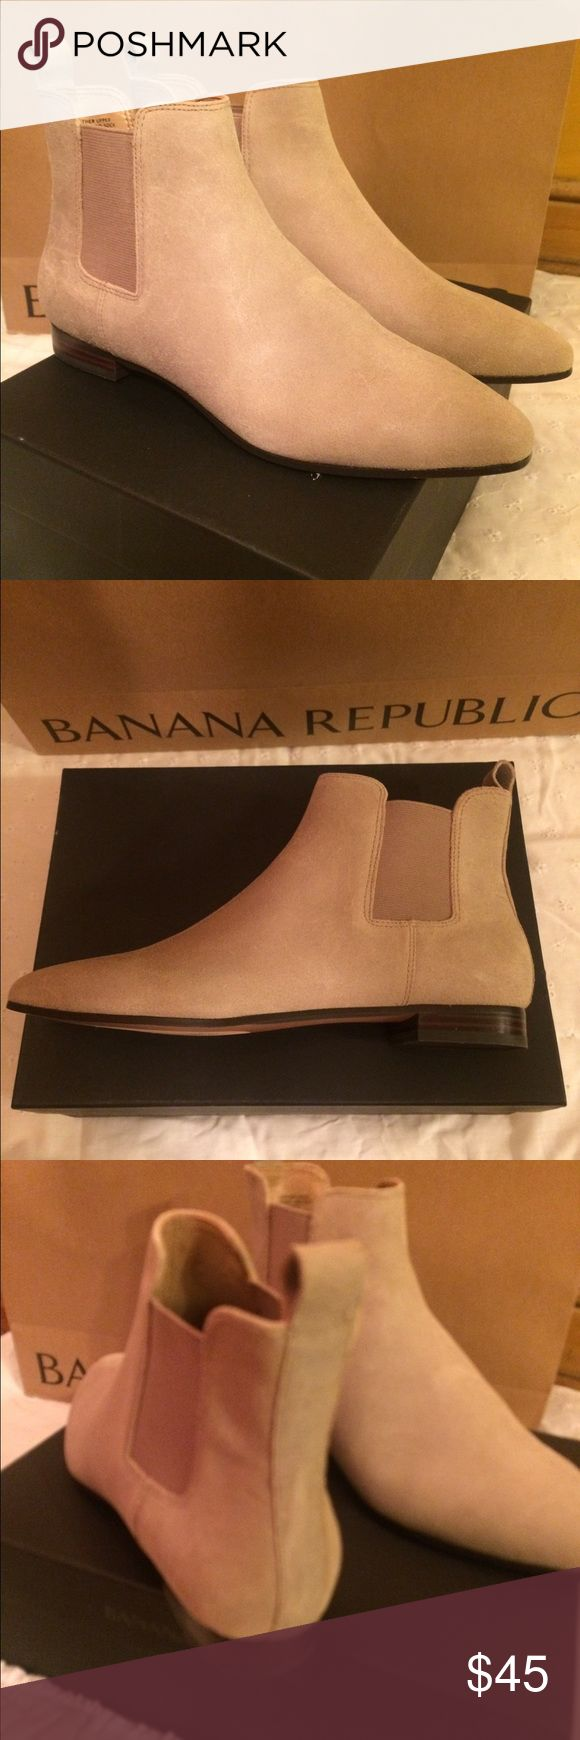 Booties - Banana Republic Brand new in box.  Never worn outside only tried on on doors.  Leather uppers.  Super comfy and easy to wear I have them in two colors. Banana Republic Shoes